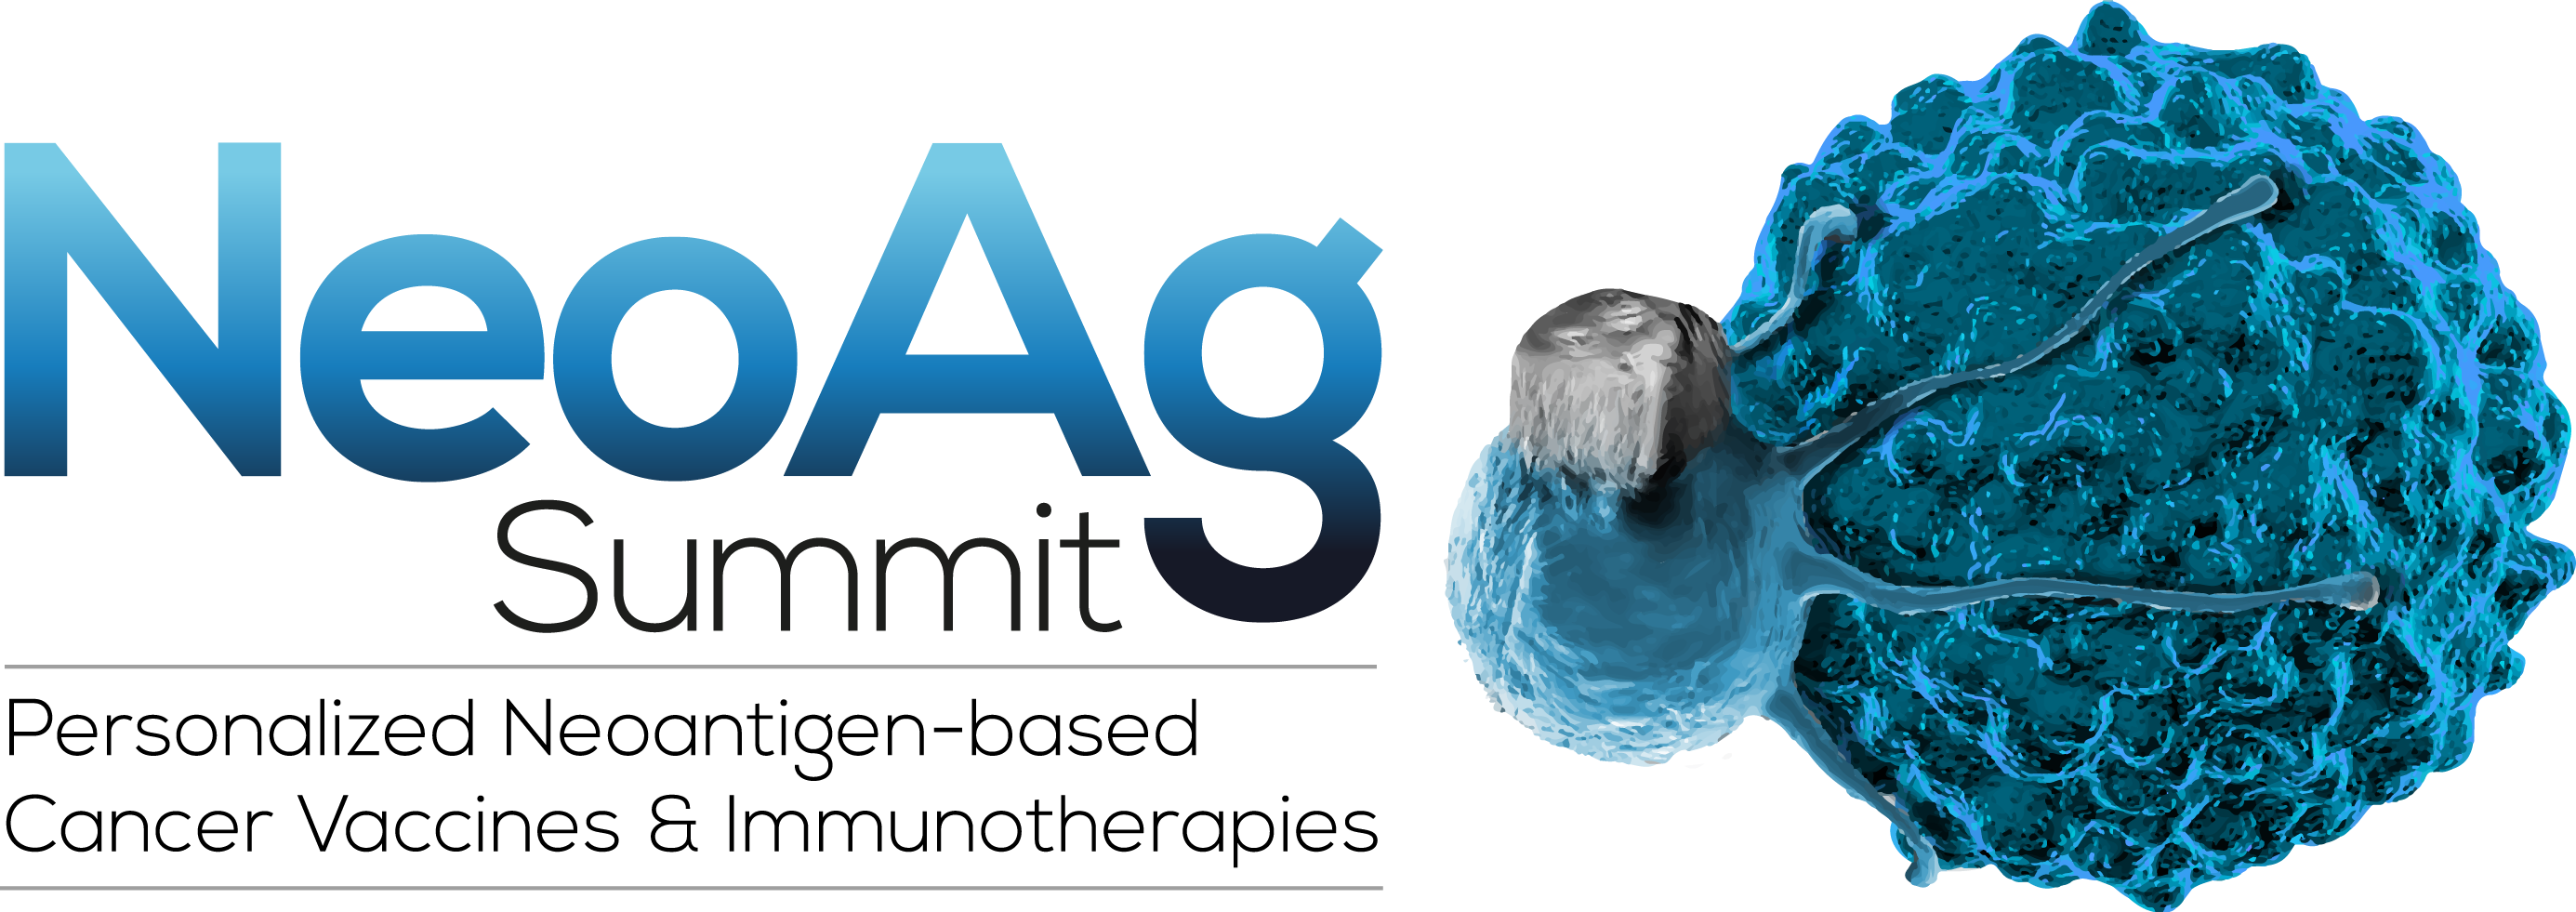 Neoantigen Summit logo options